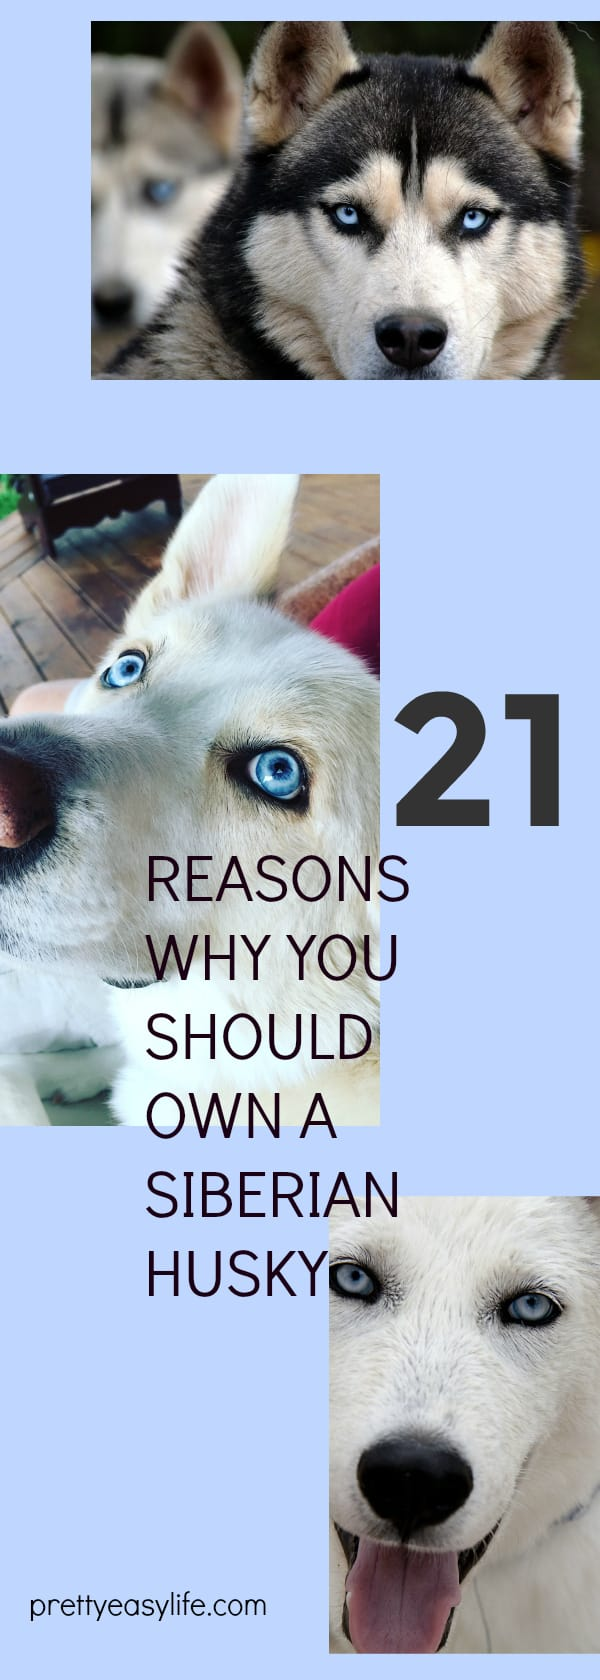 Siberian Husky - 21 reasons you should own one